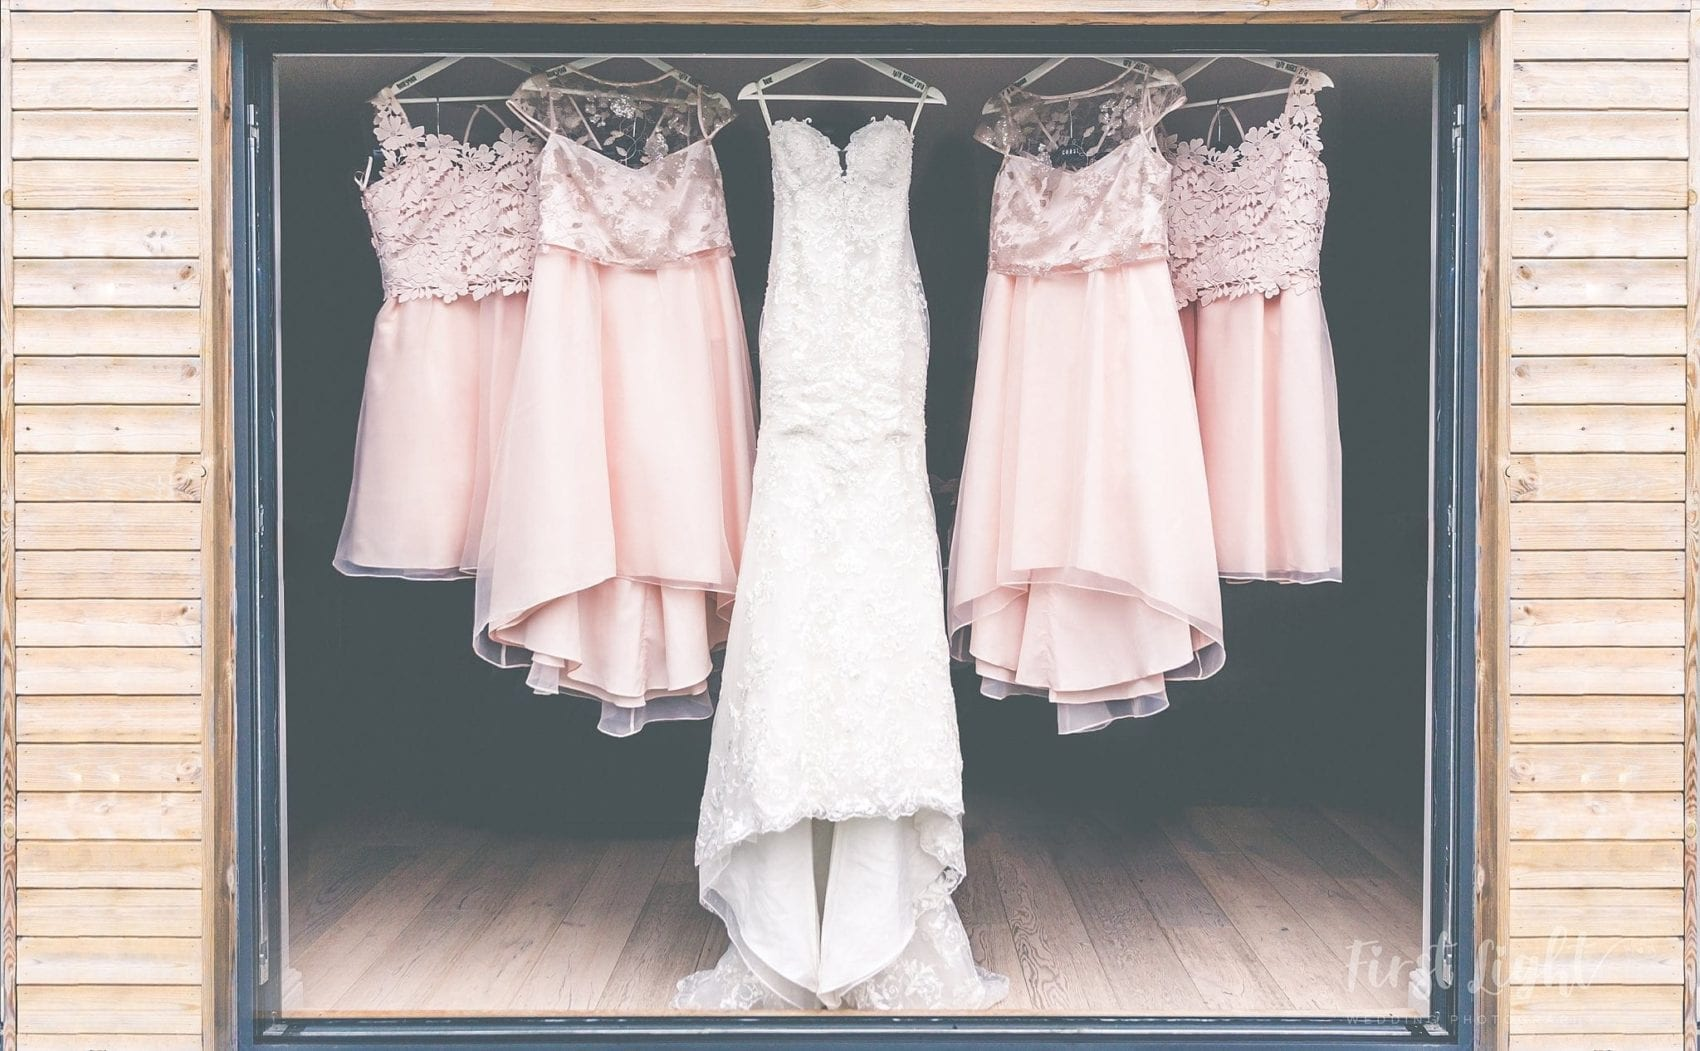 Wedding, dresses, bridesmaids, picture perfect, shepherd's hut, hanging, elegant, ever after, lower grenofen, Pre-wedding